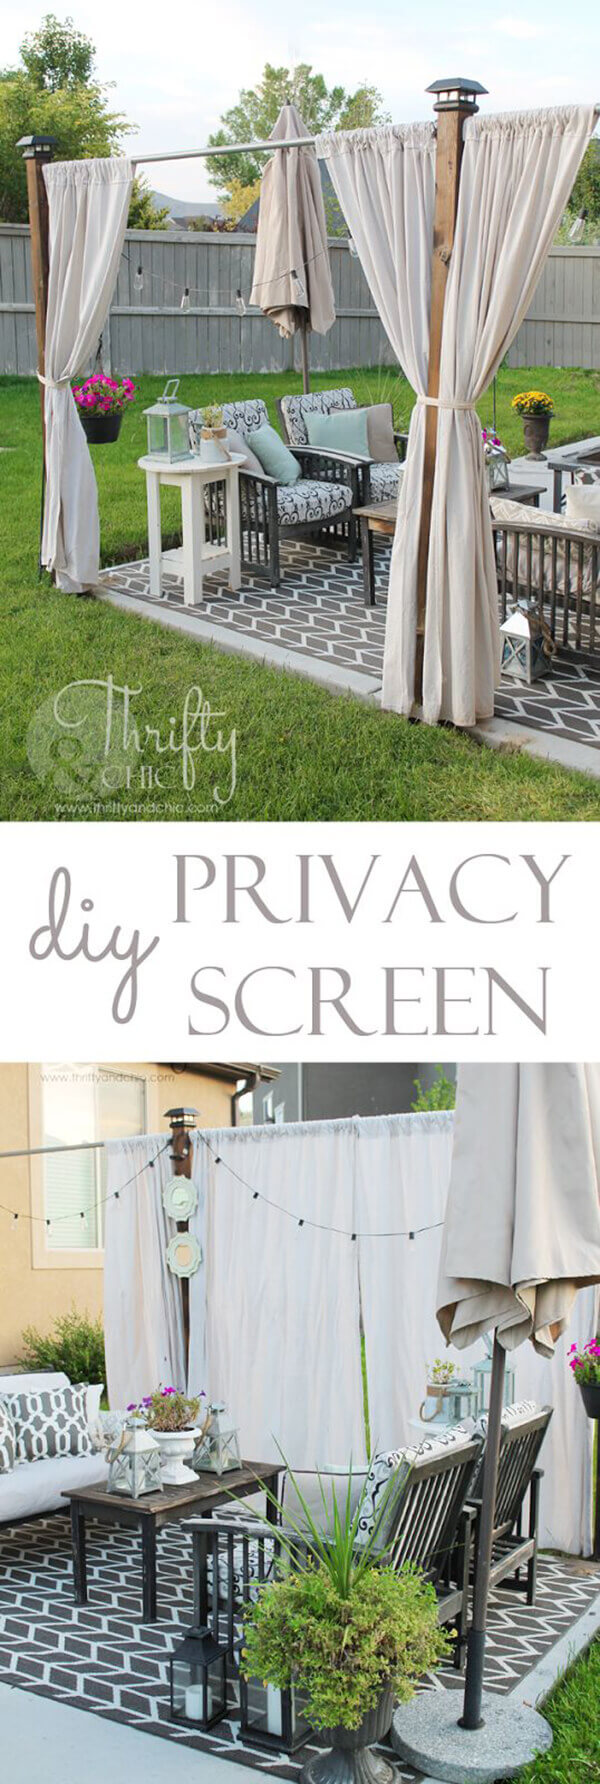 Backyard Shade and Privacy Curtains